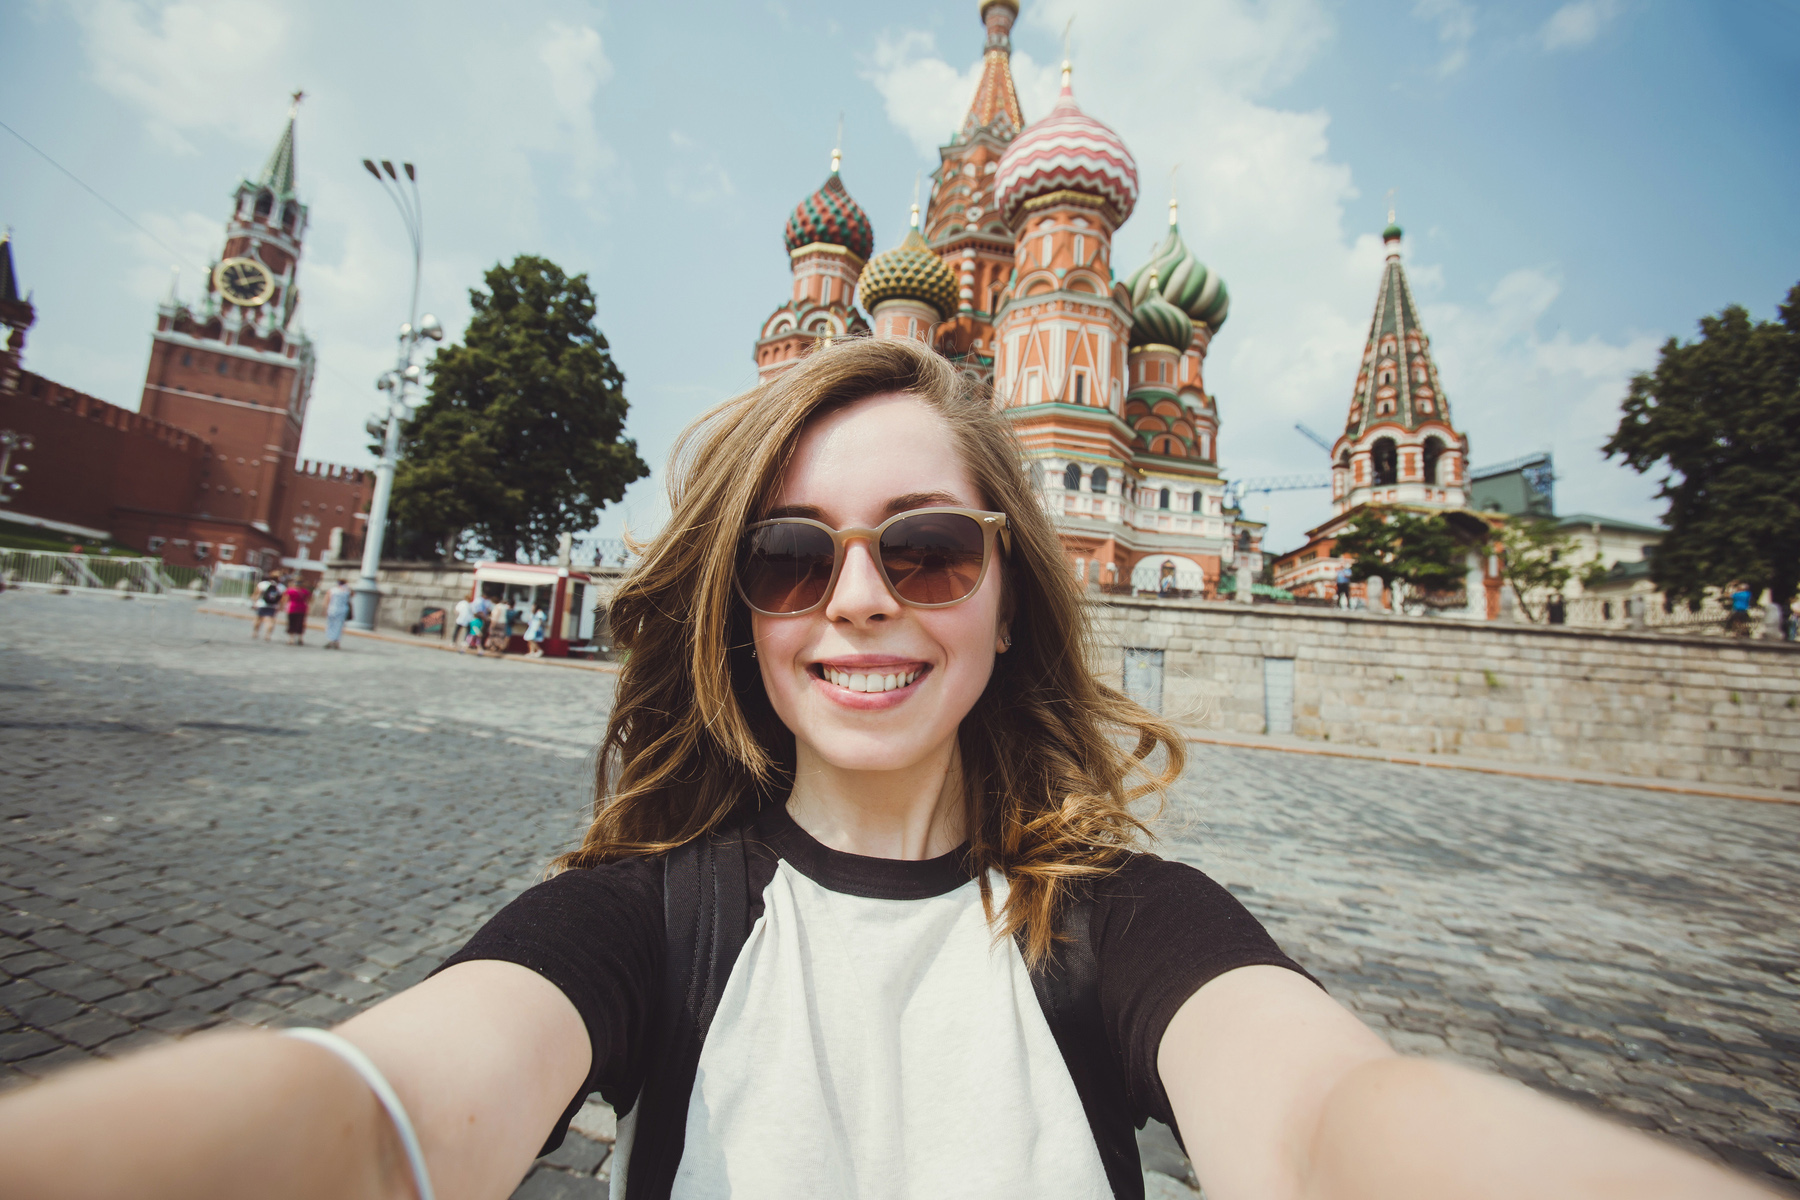 Taking a selfie on Red Square in Moscow